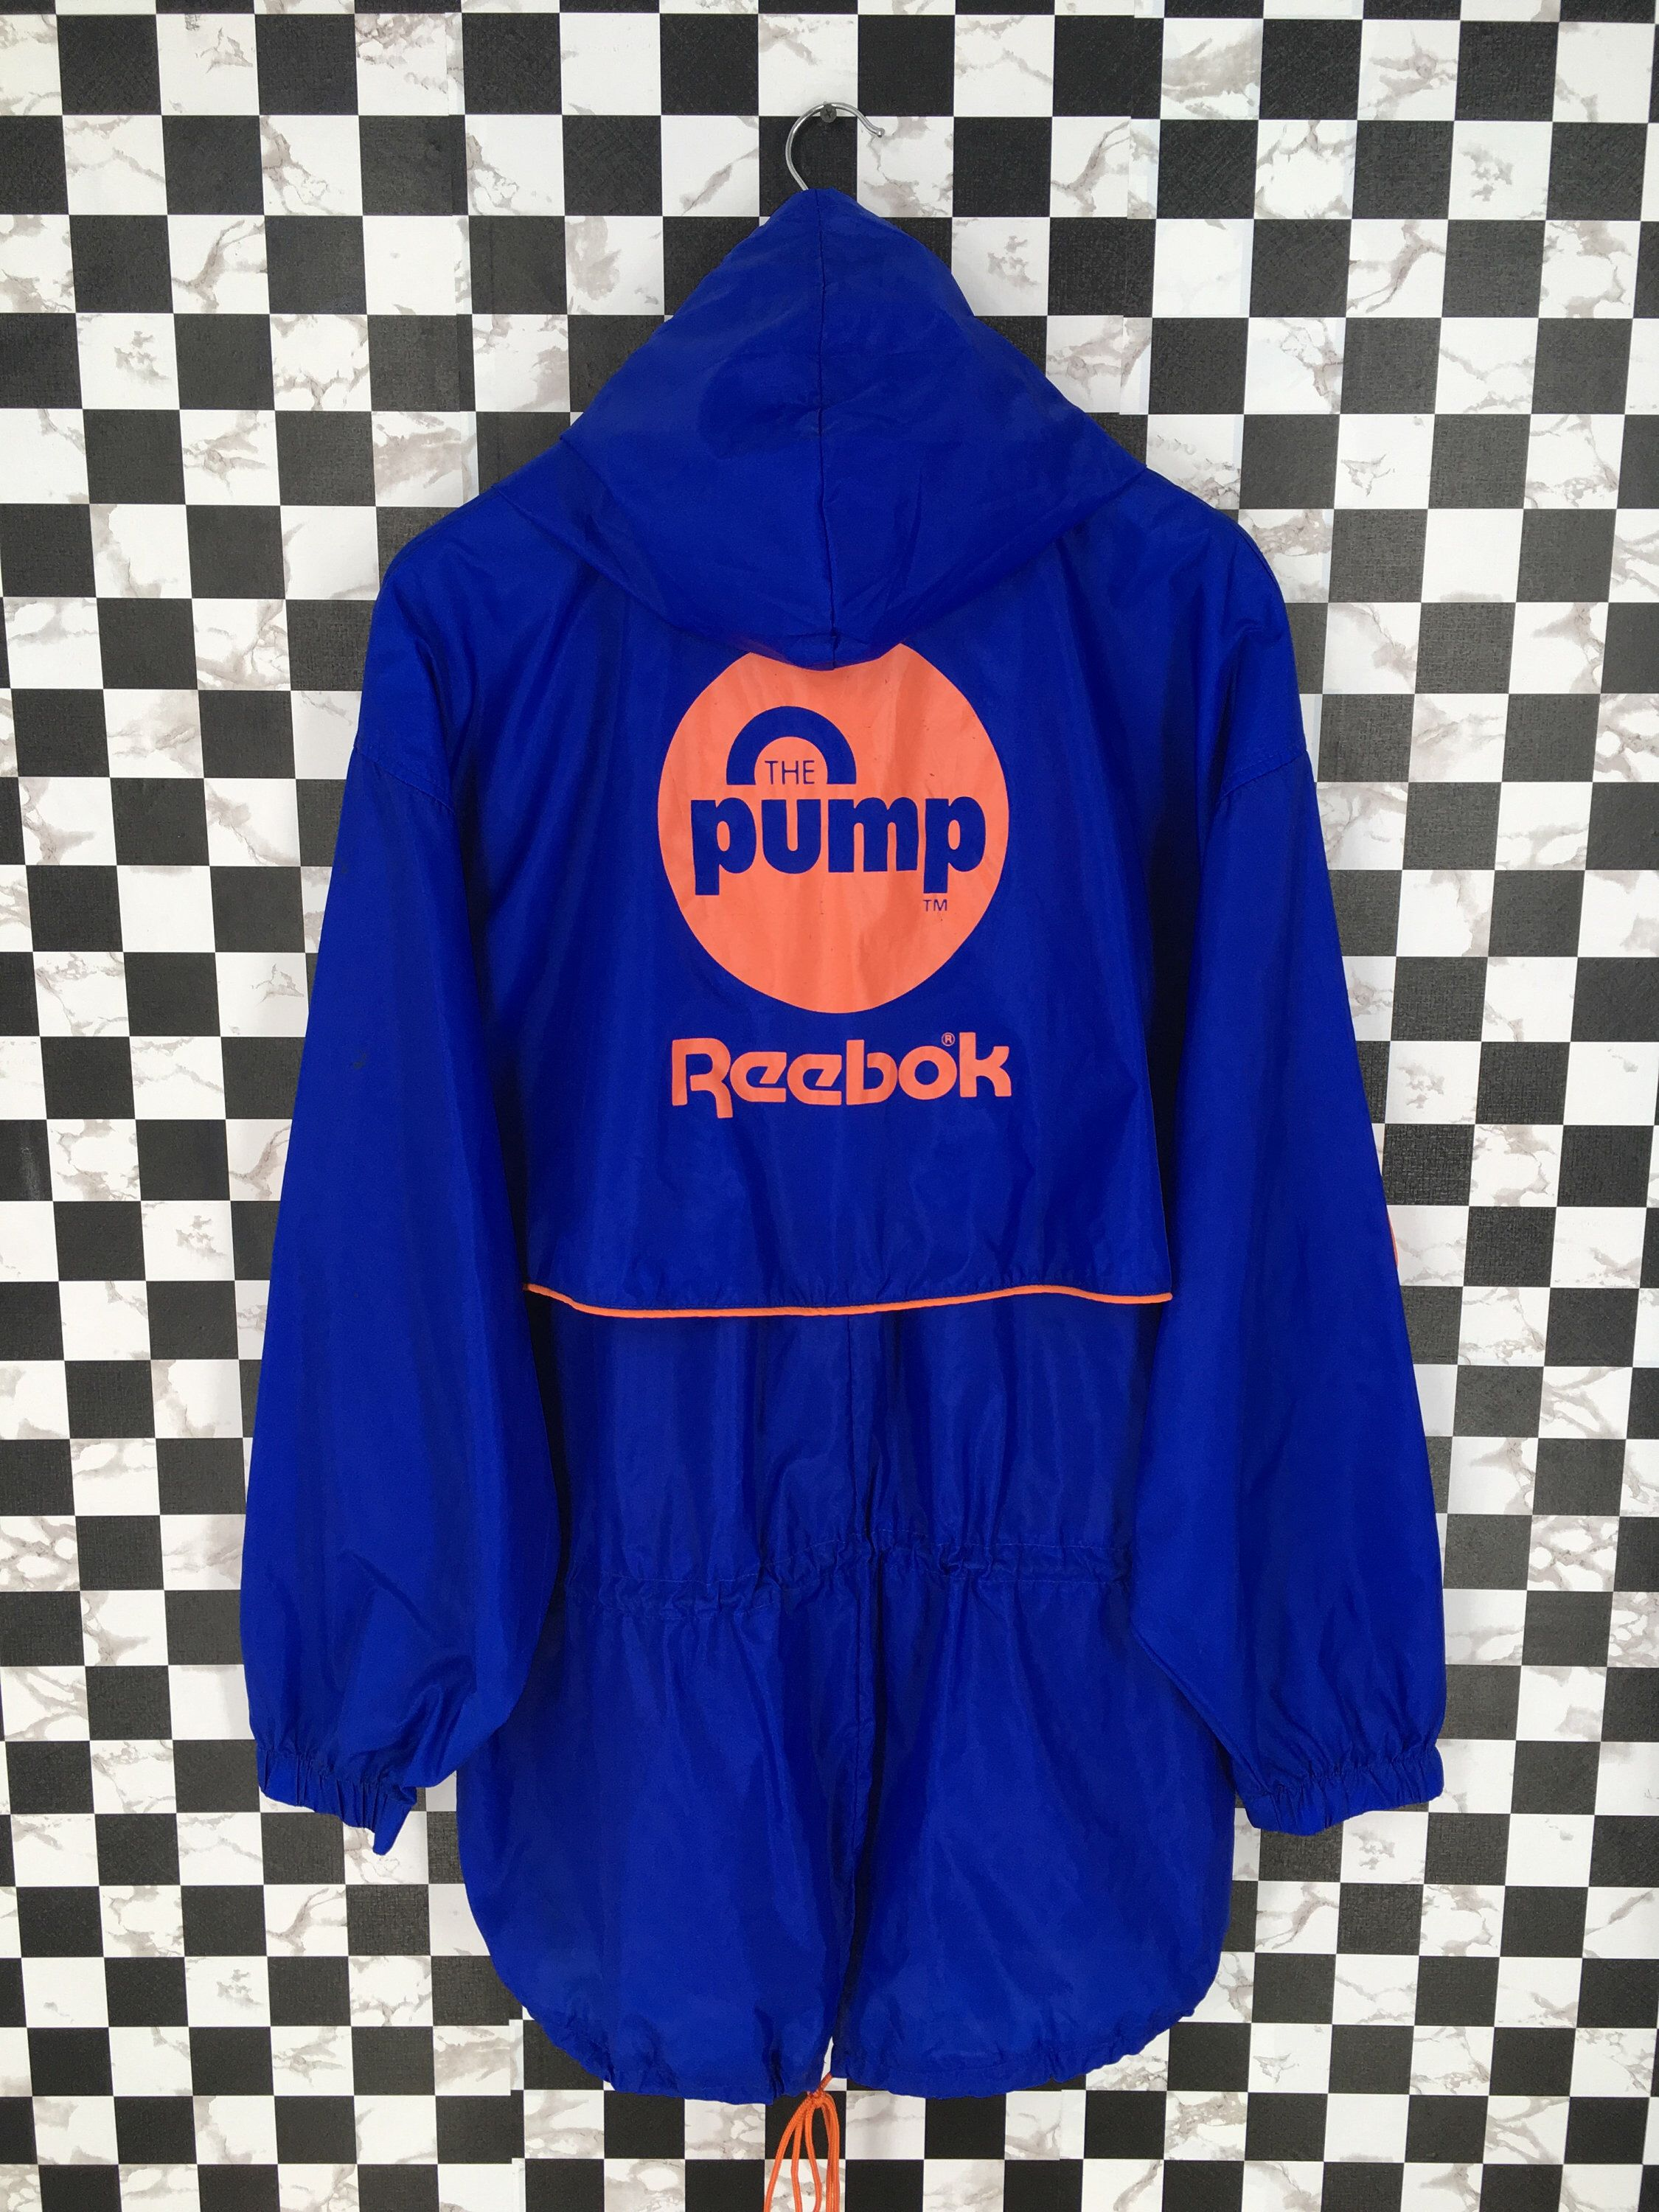 cojo Coche ilegal  Excited to share this item from my #etsy shop: Vintage 90's REEBOK Parka  Jacket Large Reebok Pump Windreak…   Blue jacket, Grey pullover sweater,  Adidas windbreaker